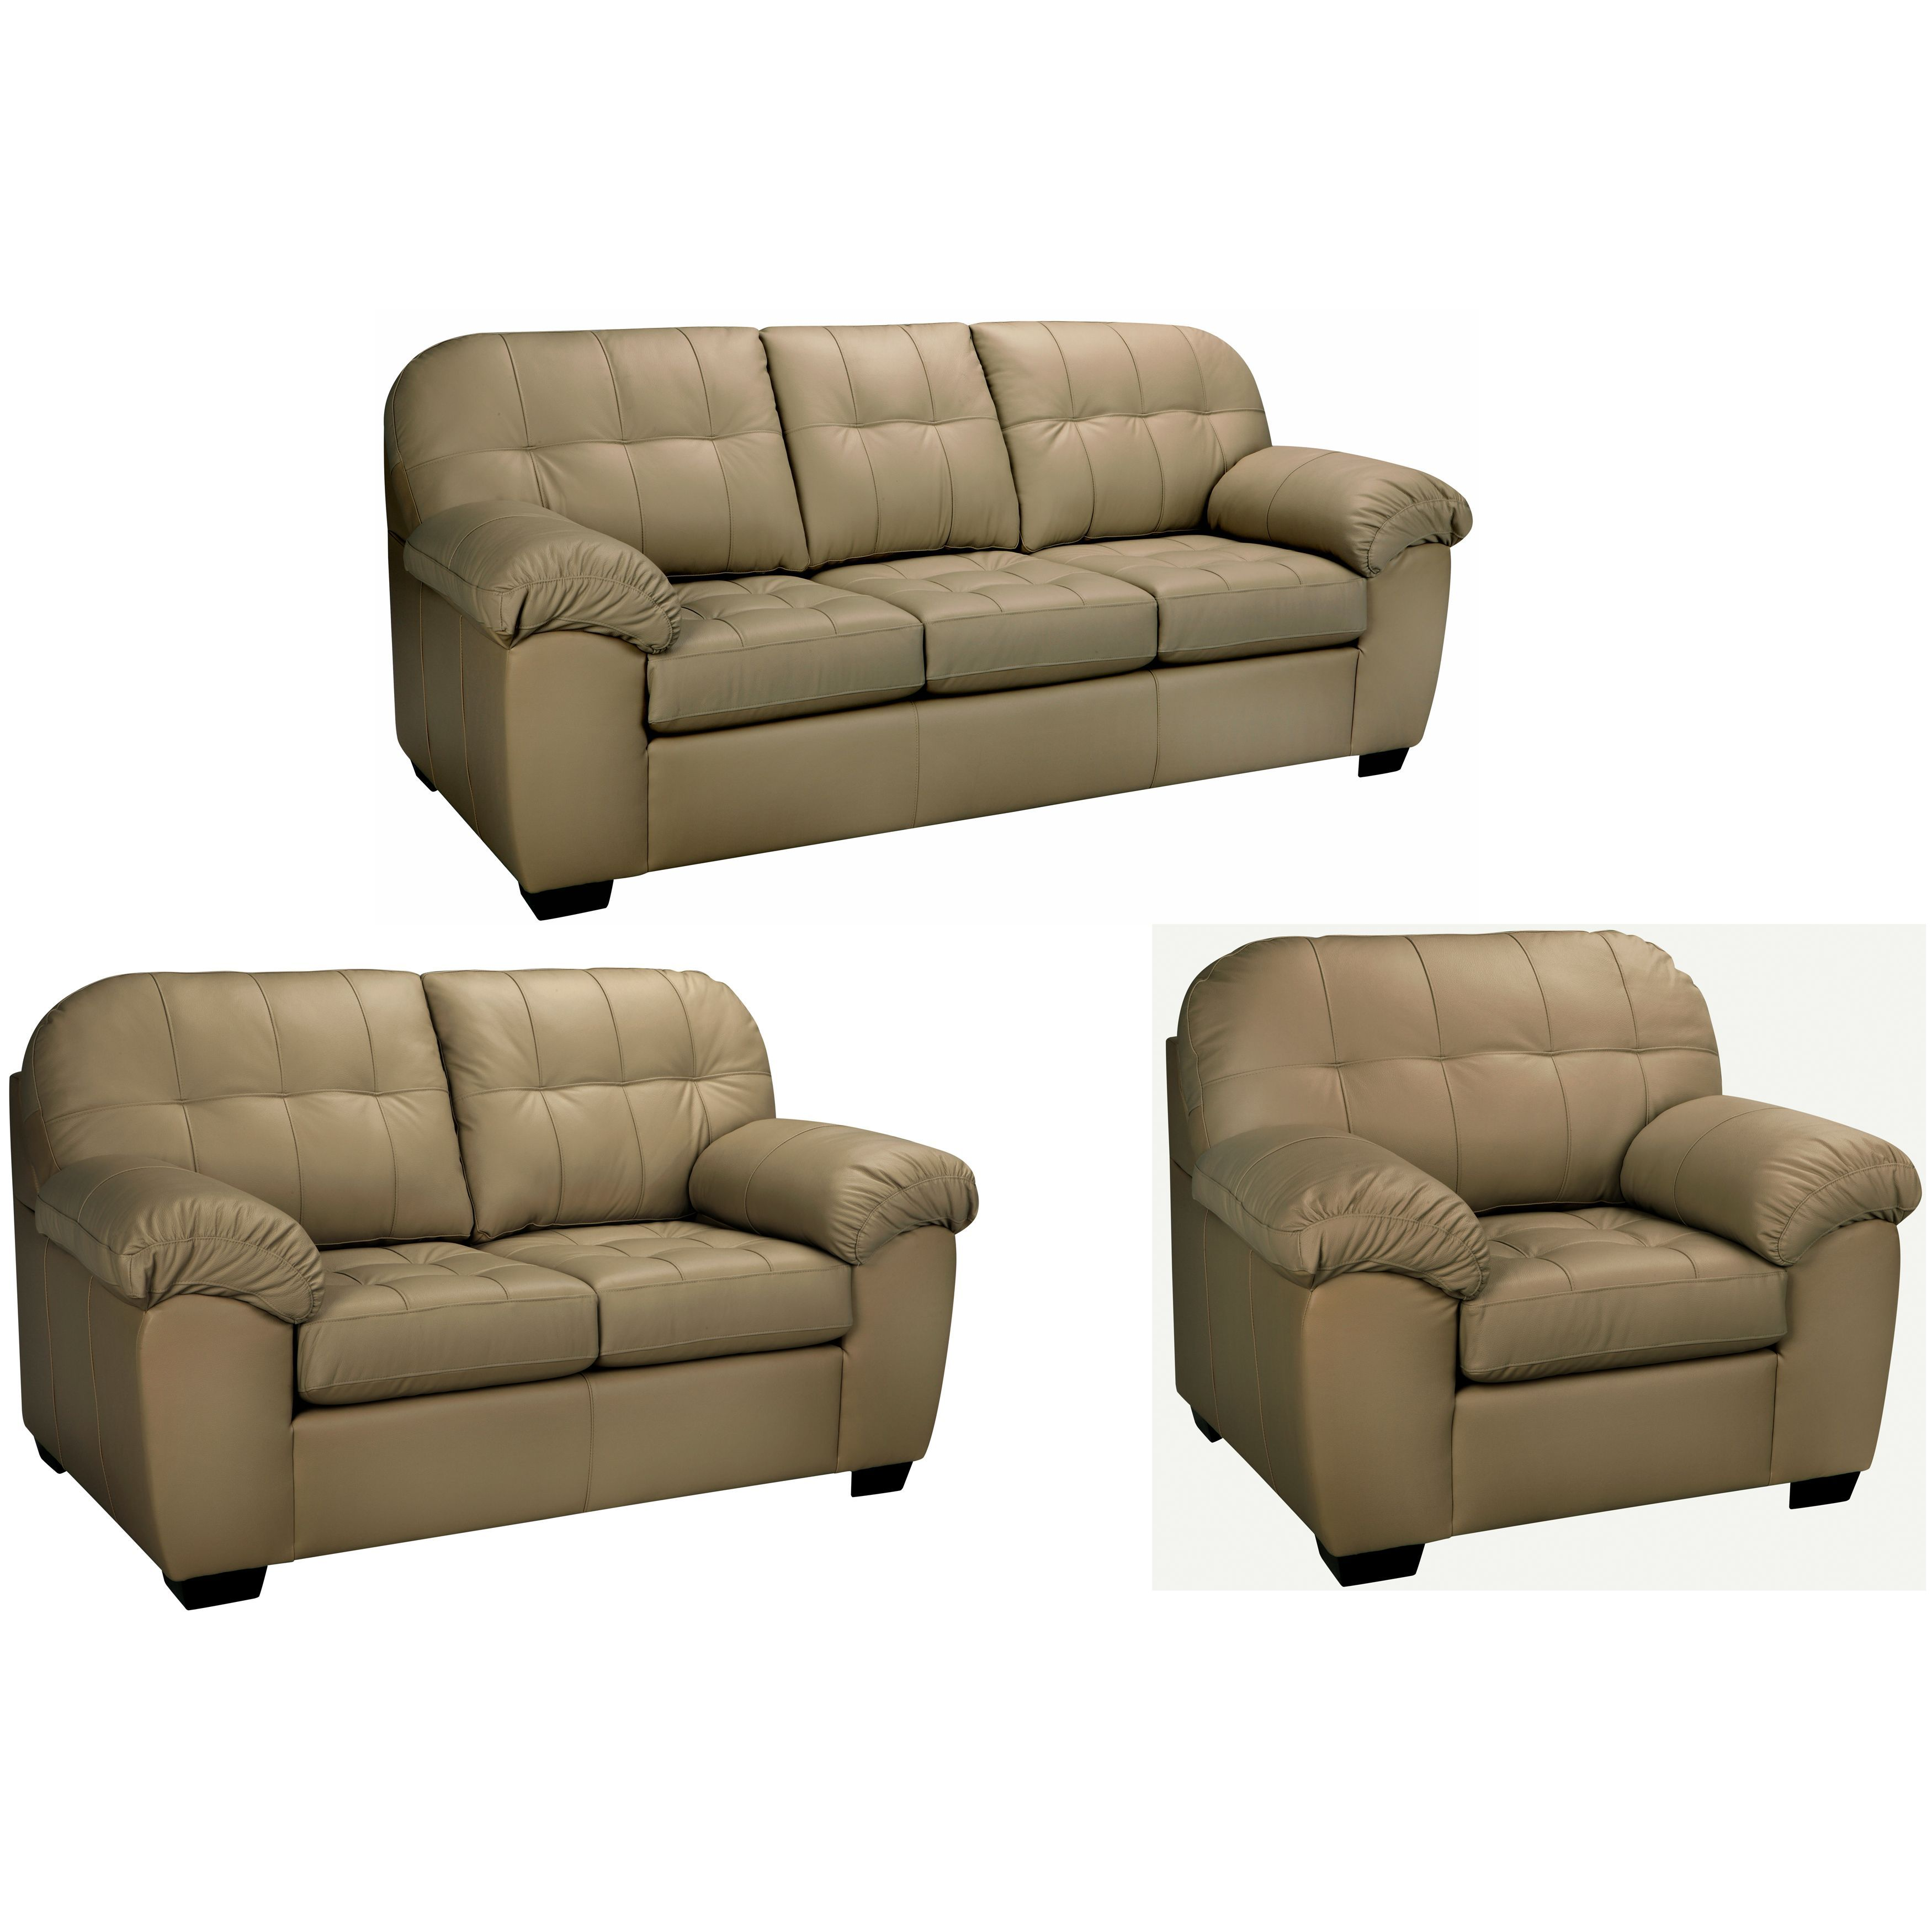 The Sophia Taupe Italian Leather Sofa Loveseat And Chair Are